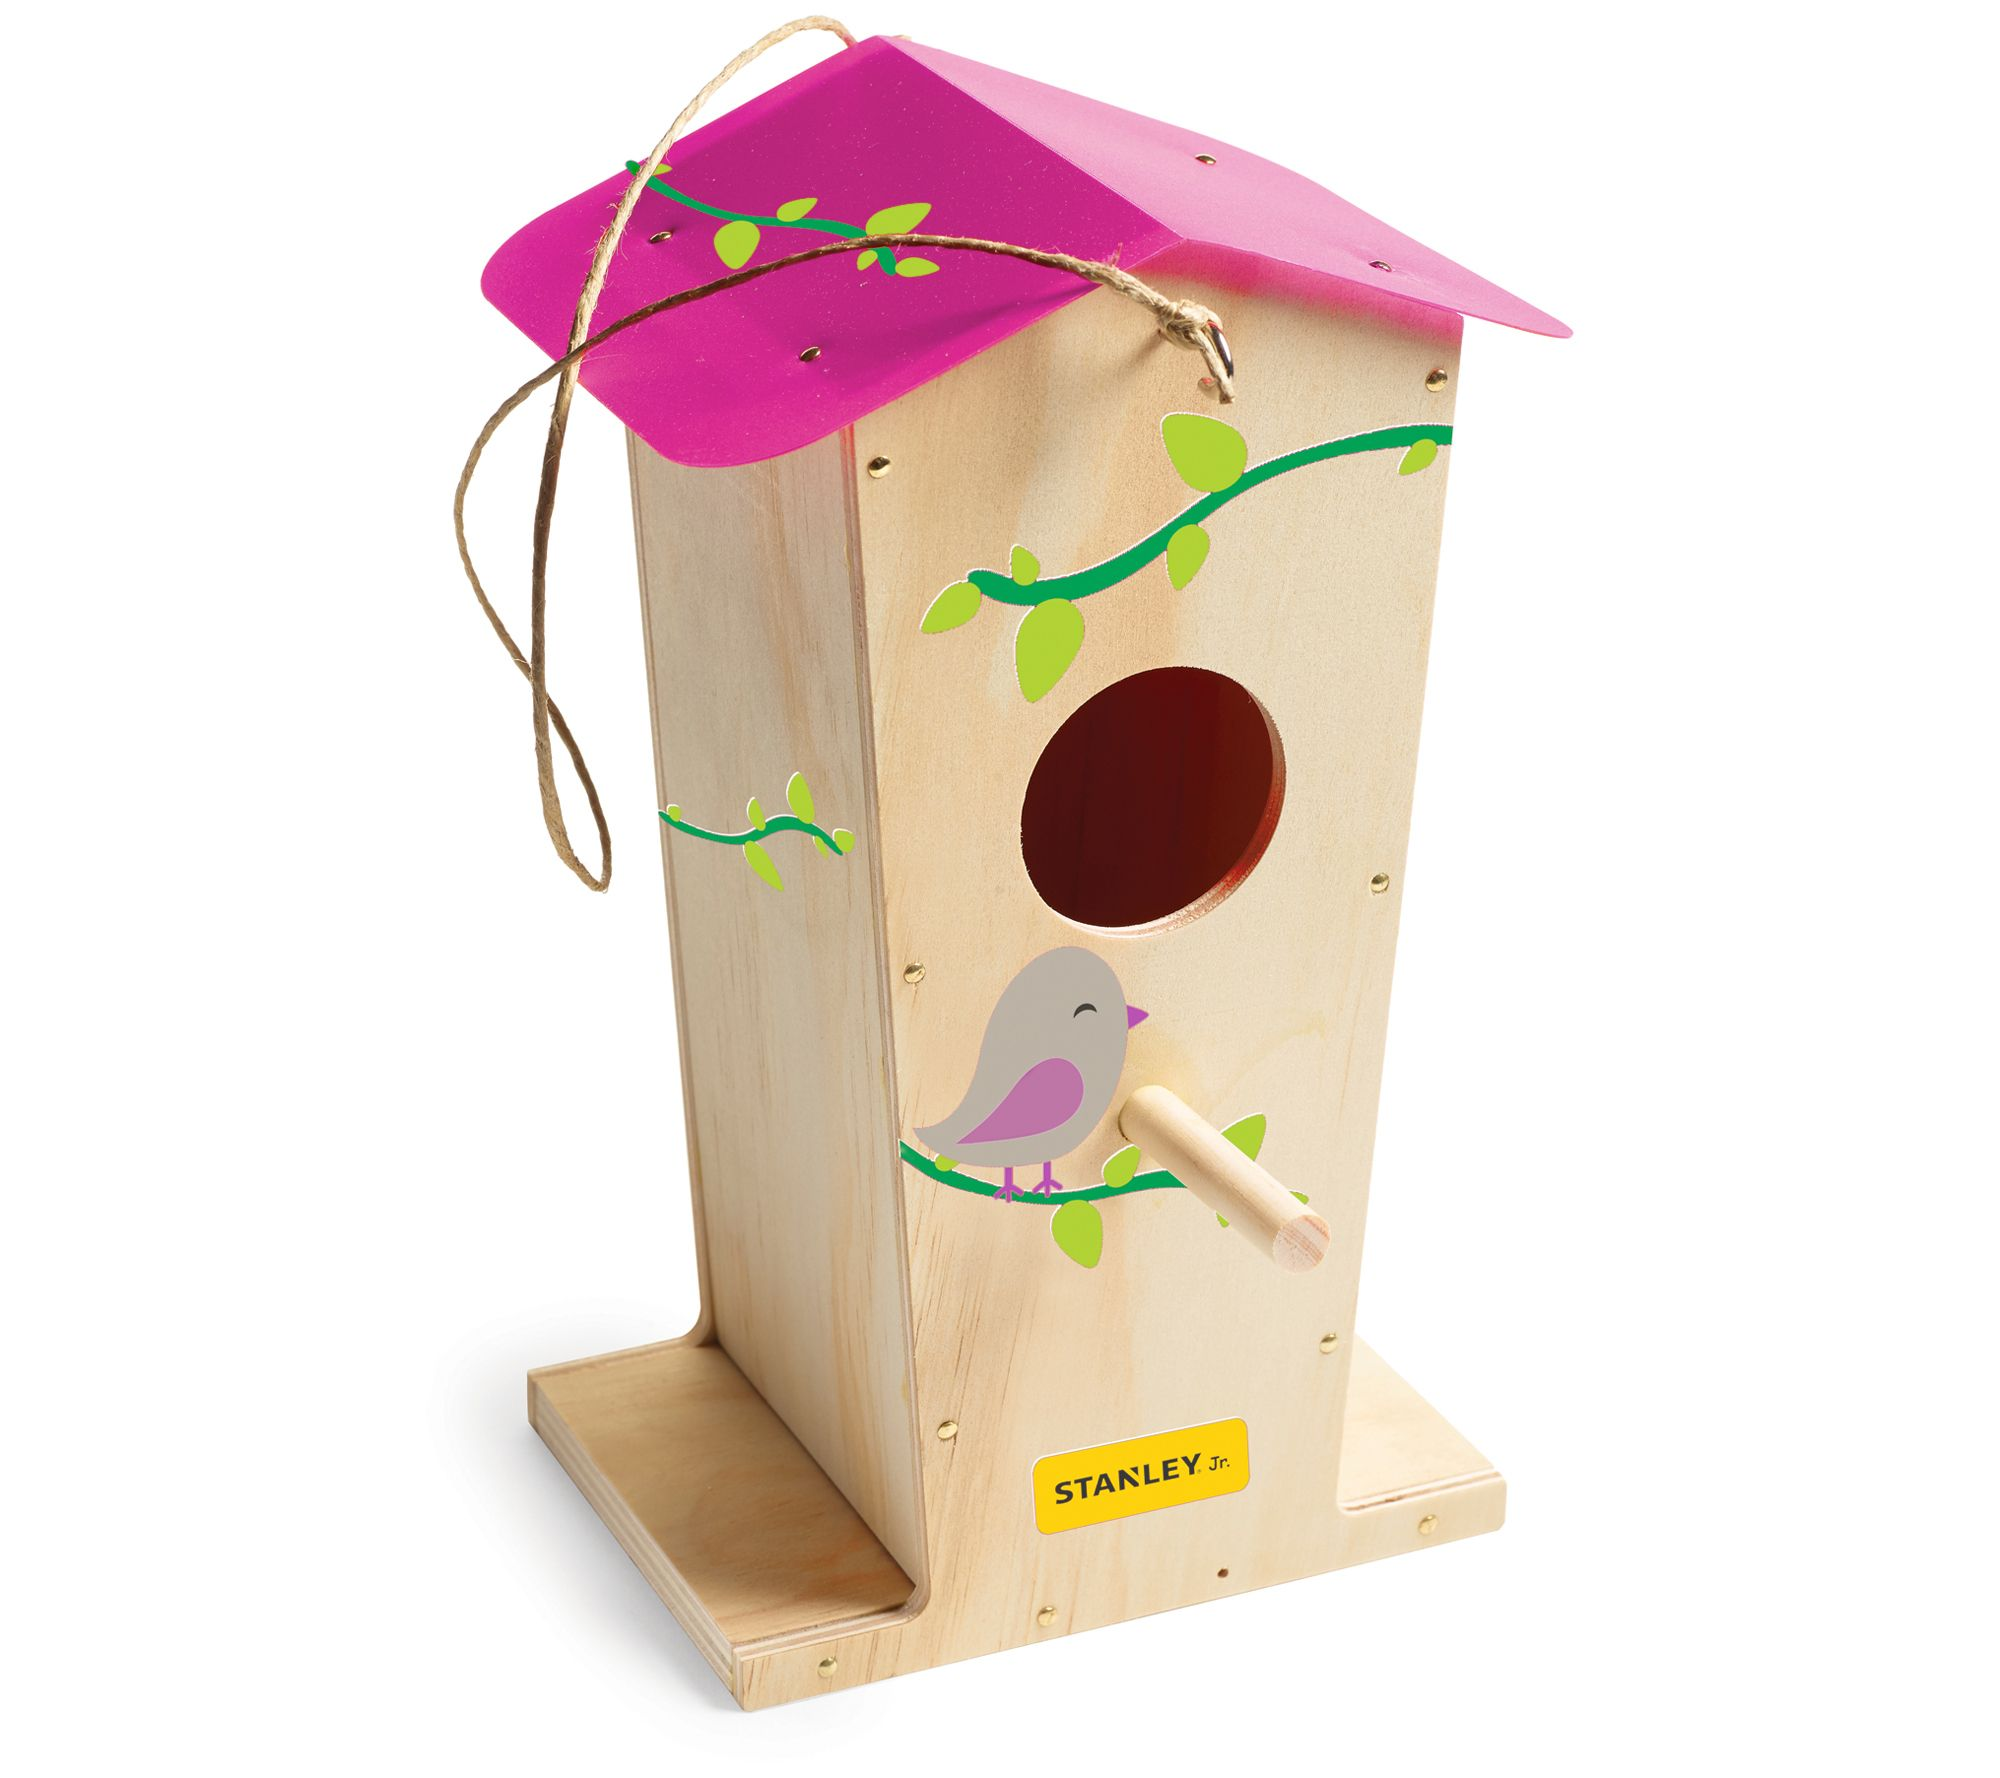 Stanley Jr. Tall Bird House Kit With 5 Piece Tool Set by Stanley